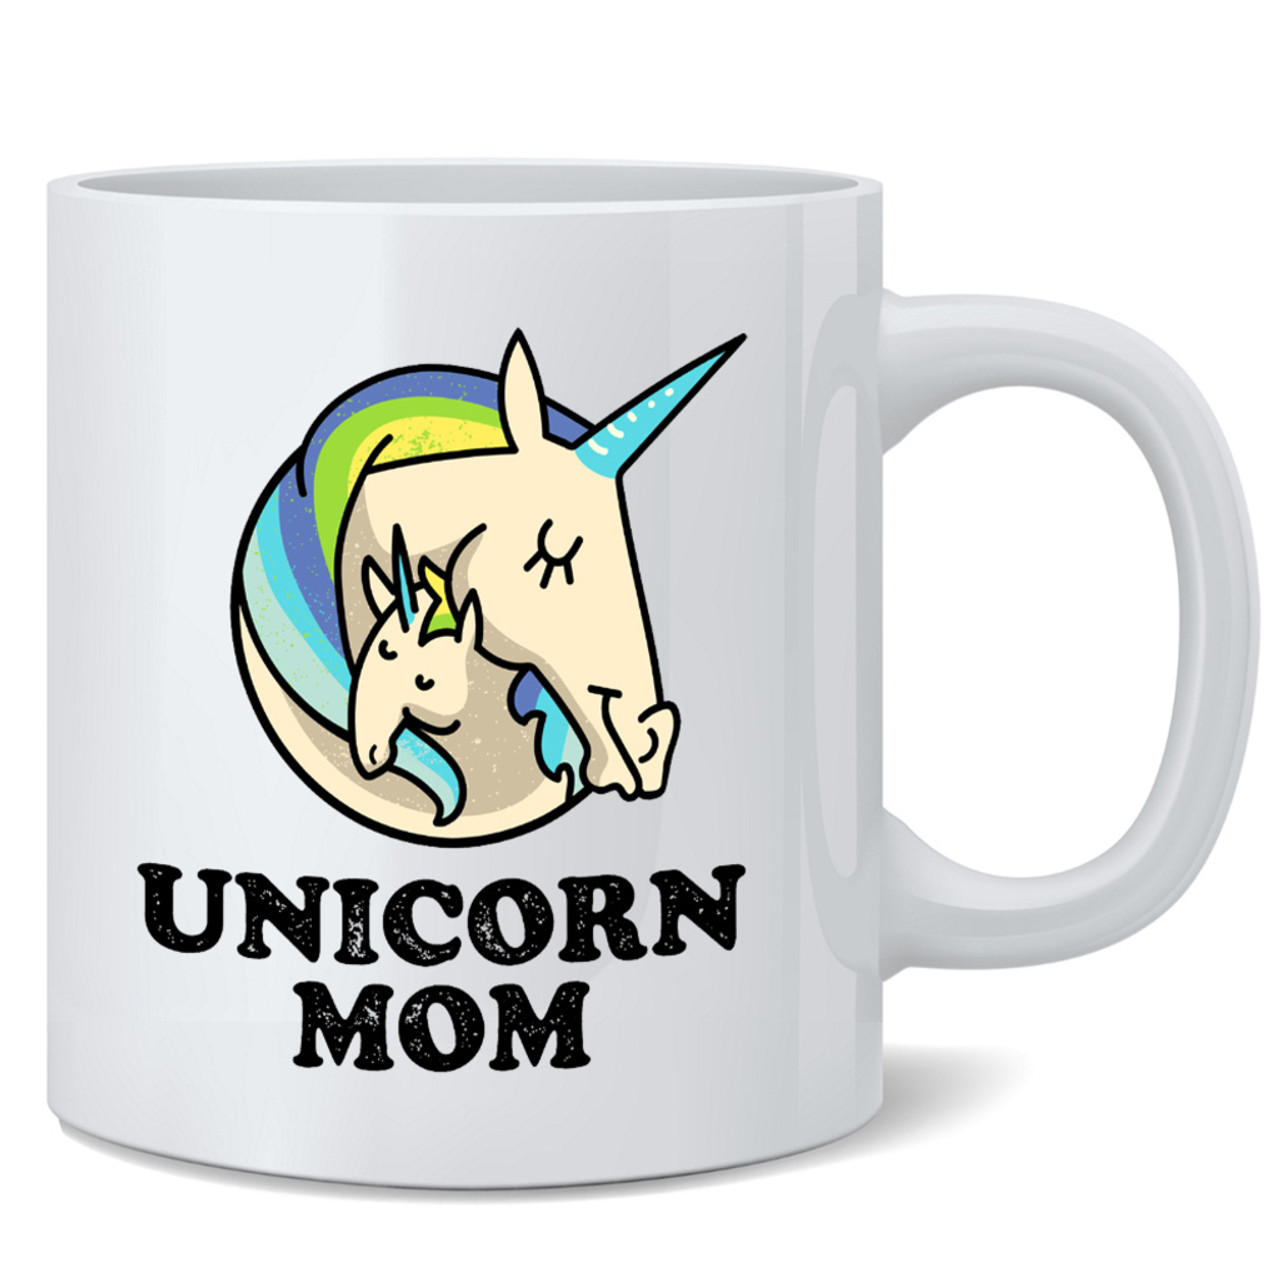 Unicorn Mom Gifts For Moms Cute Ceramic Coffee Mug Tea Cup Fun Novelty Gift 12 Oz Poster Foundry